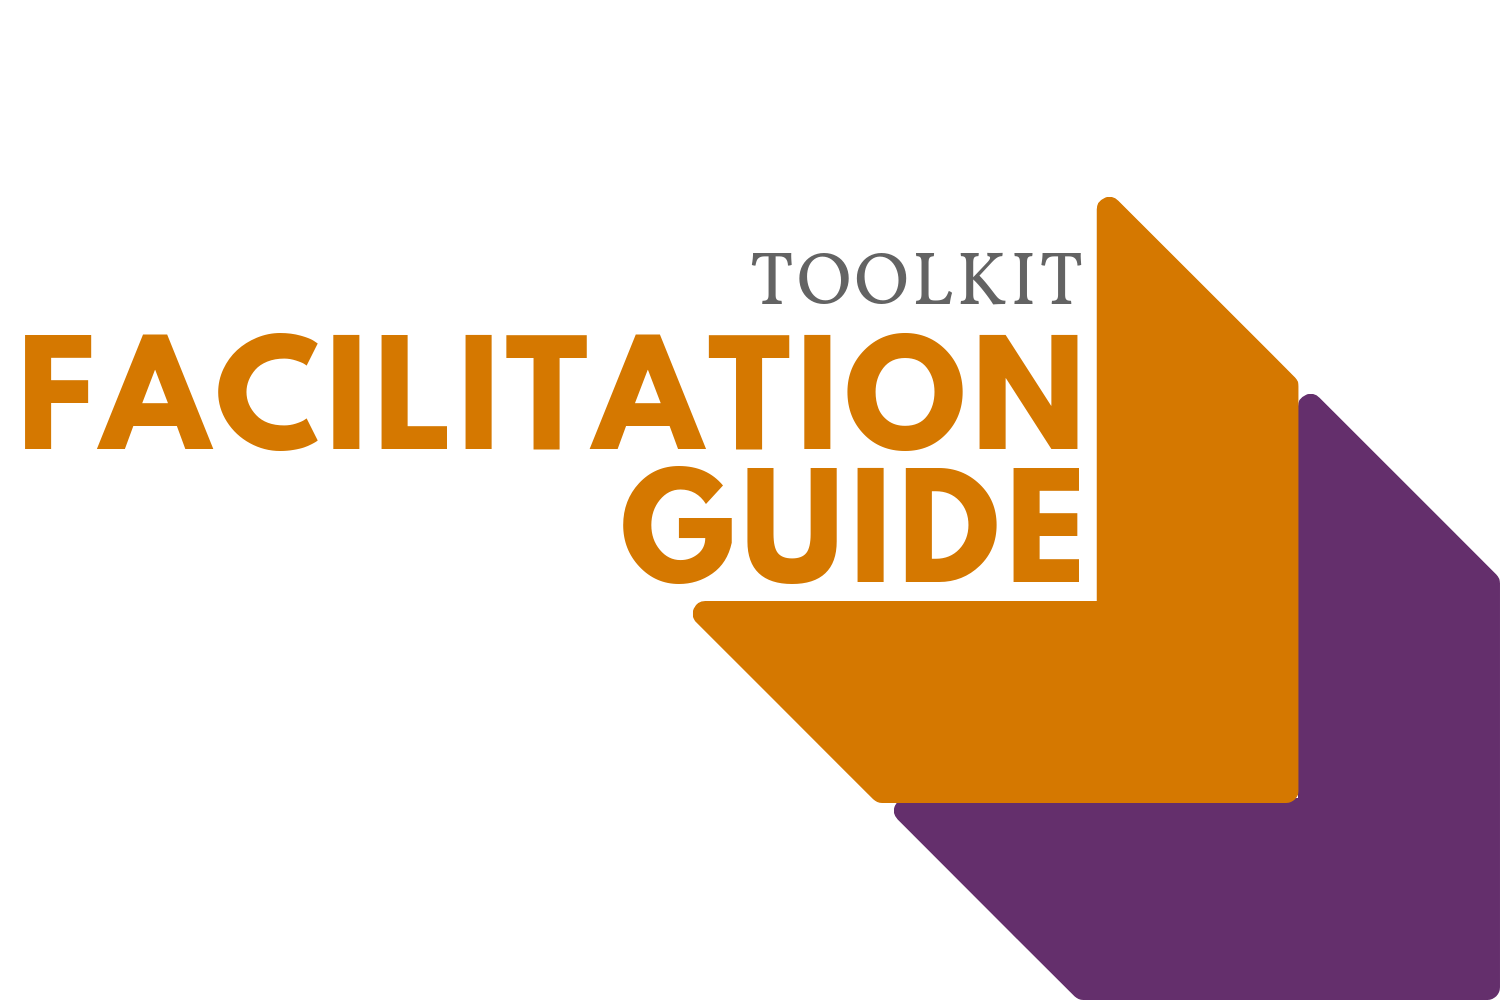 Toolkit Facilitation Guide